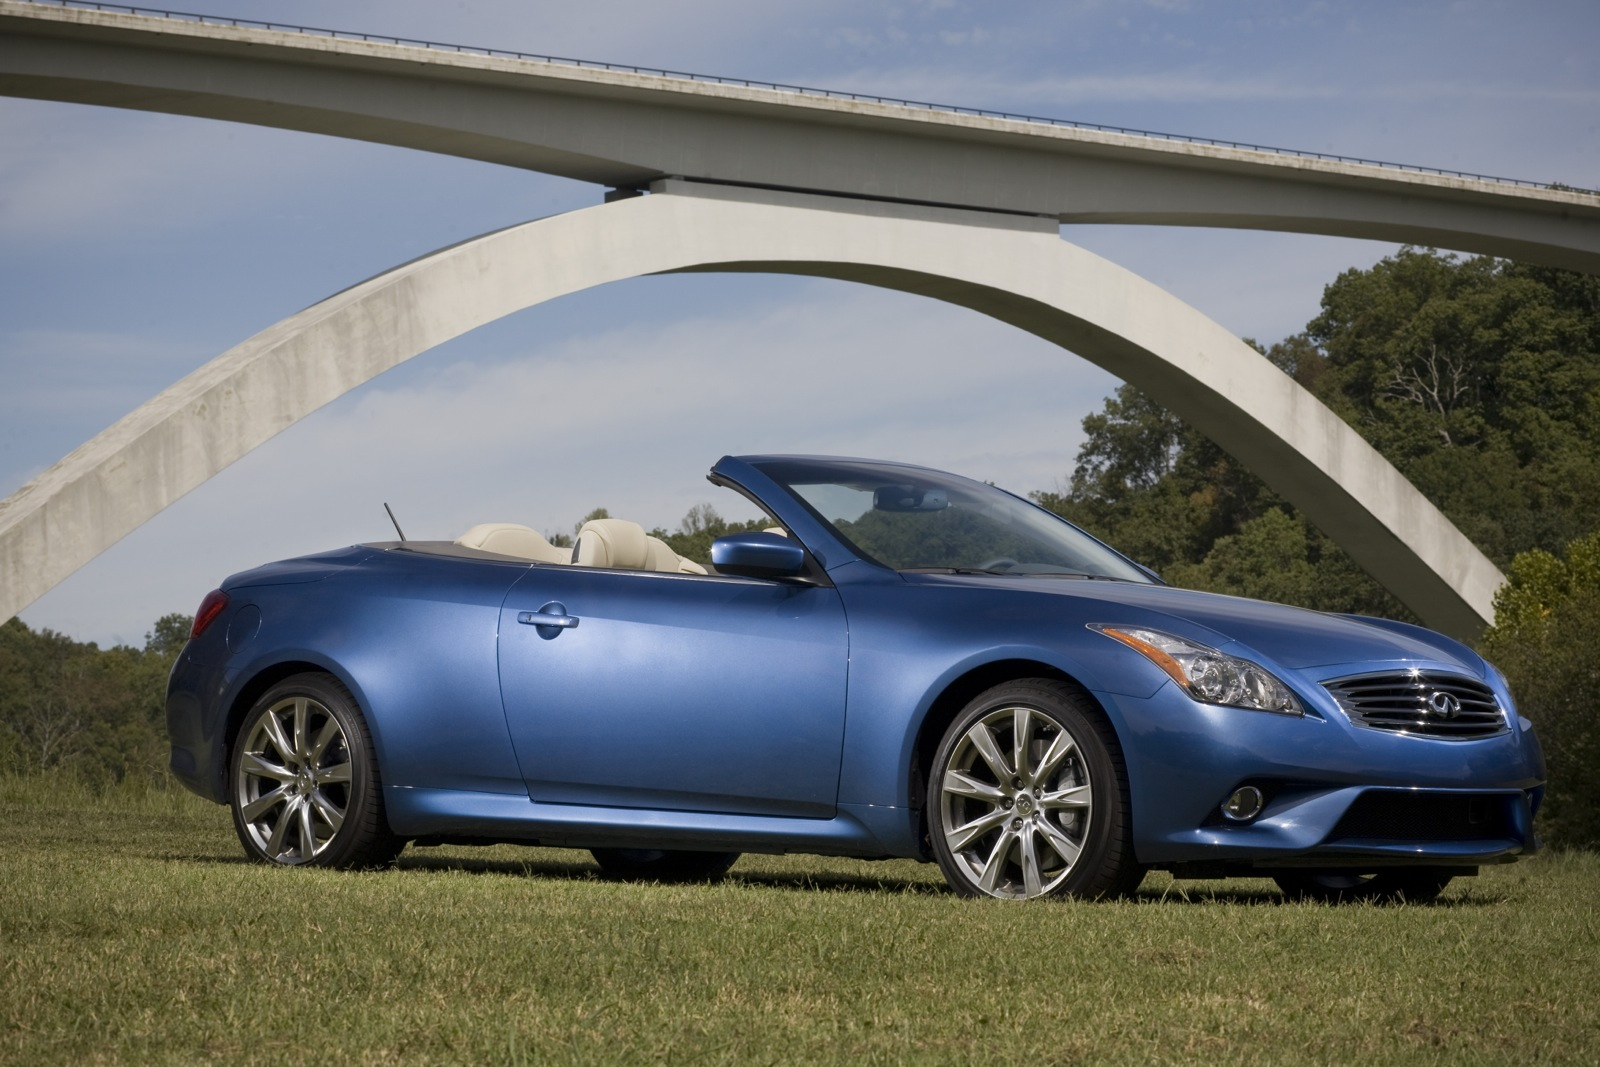 New And Used Infiniti G37 Convertible Prices Photos Reviews Specs The Car Connection